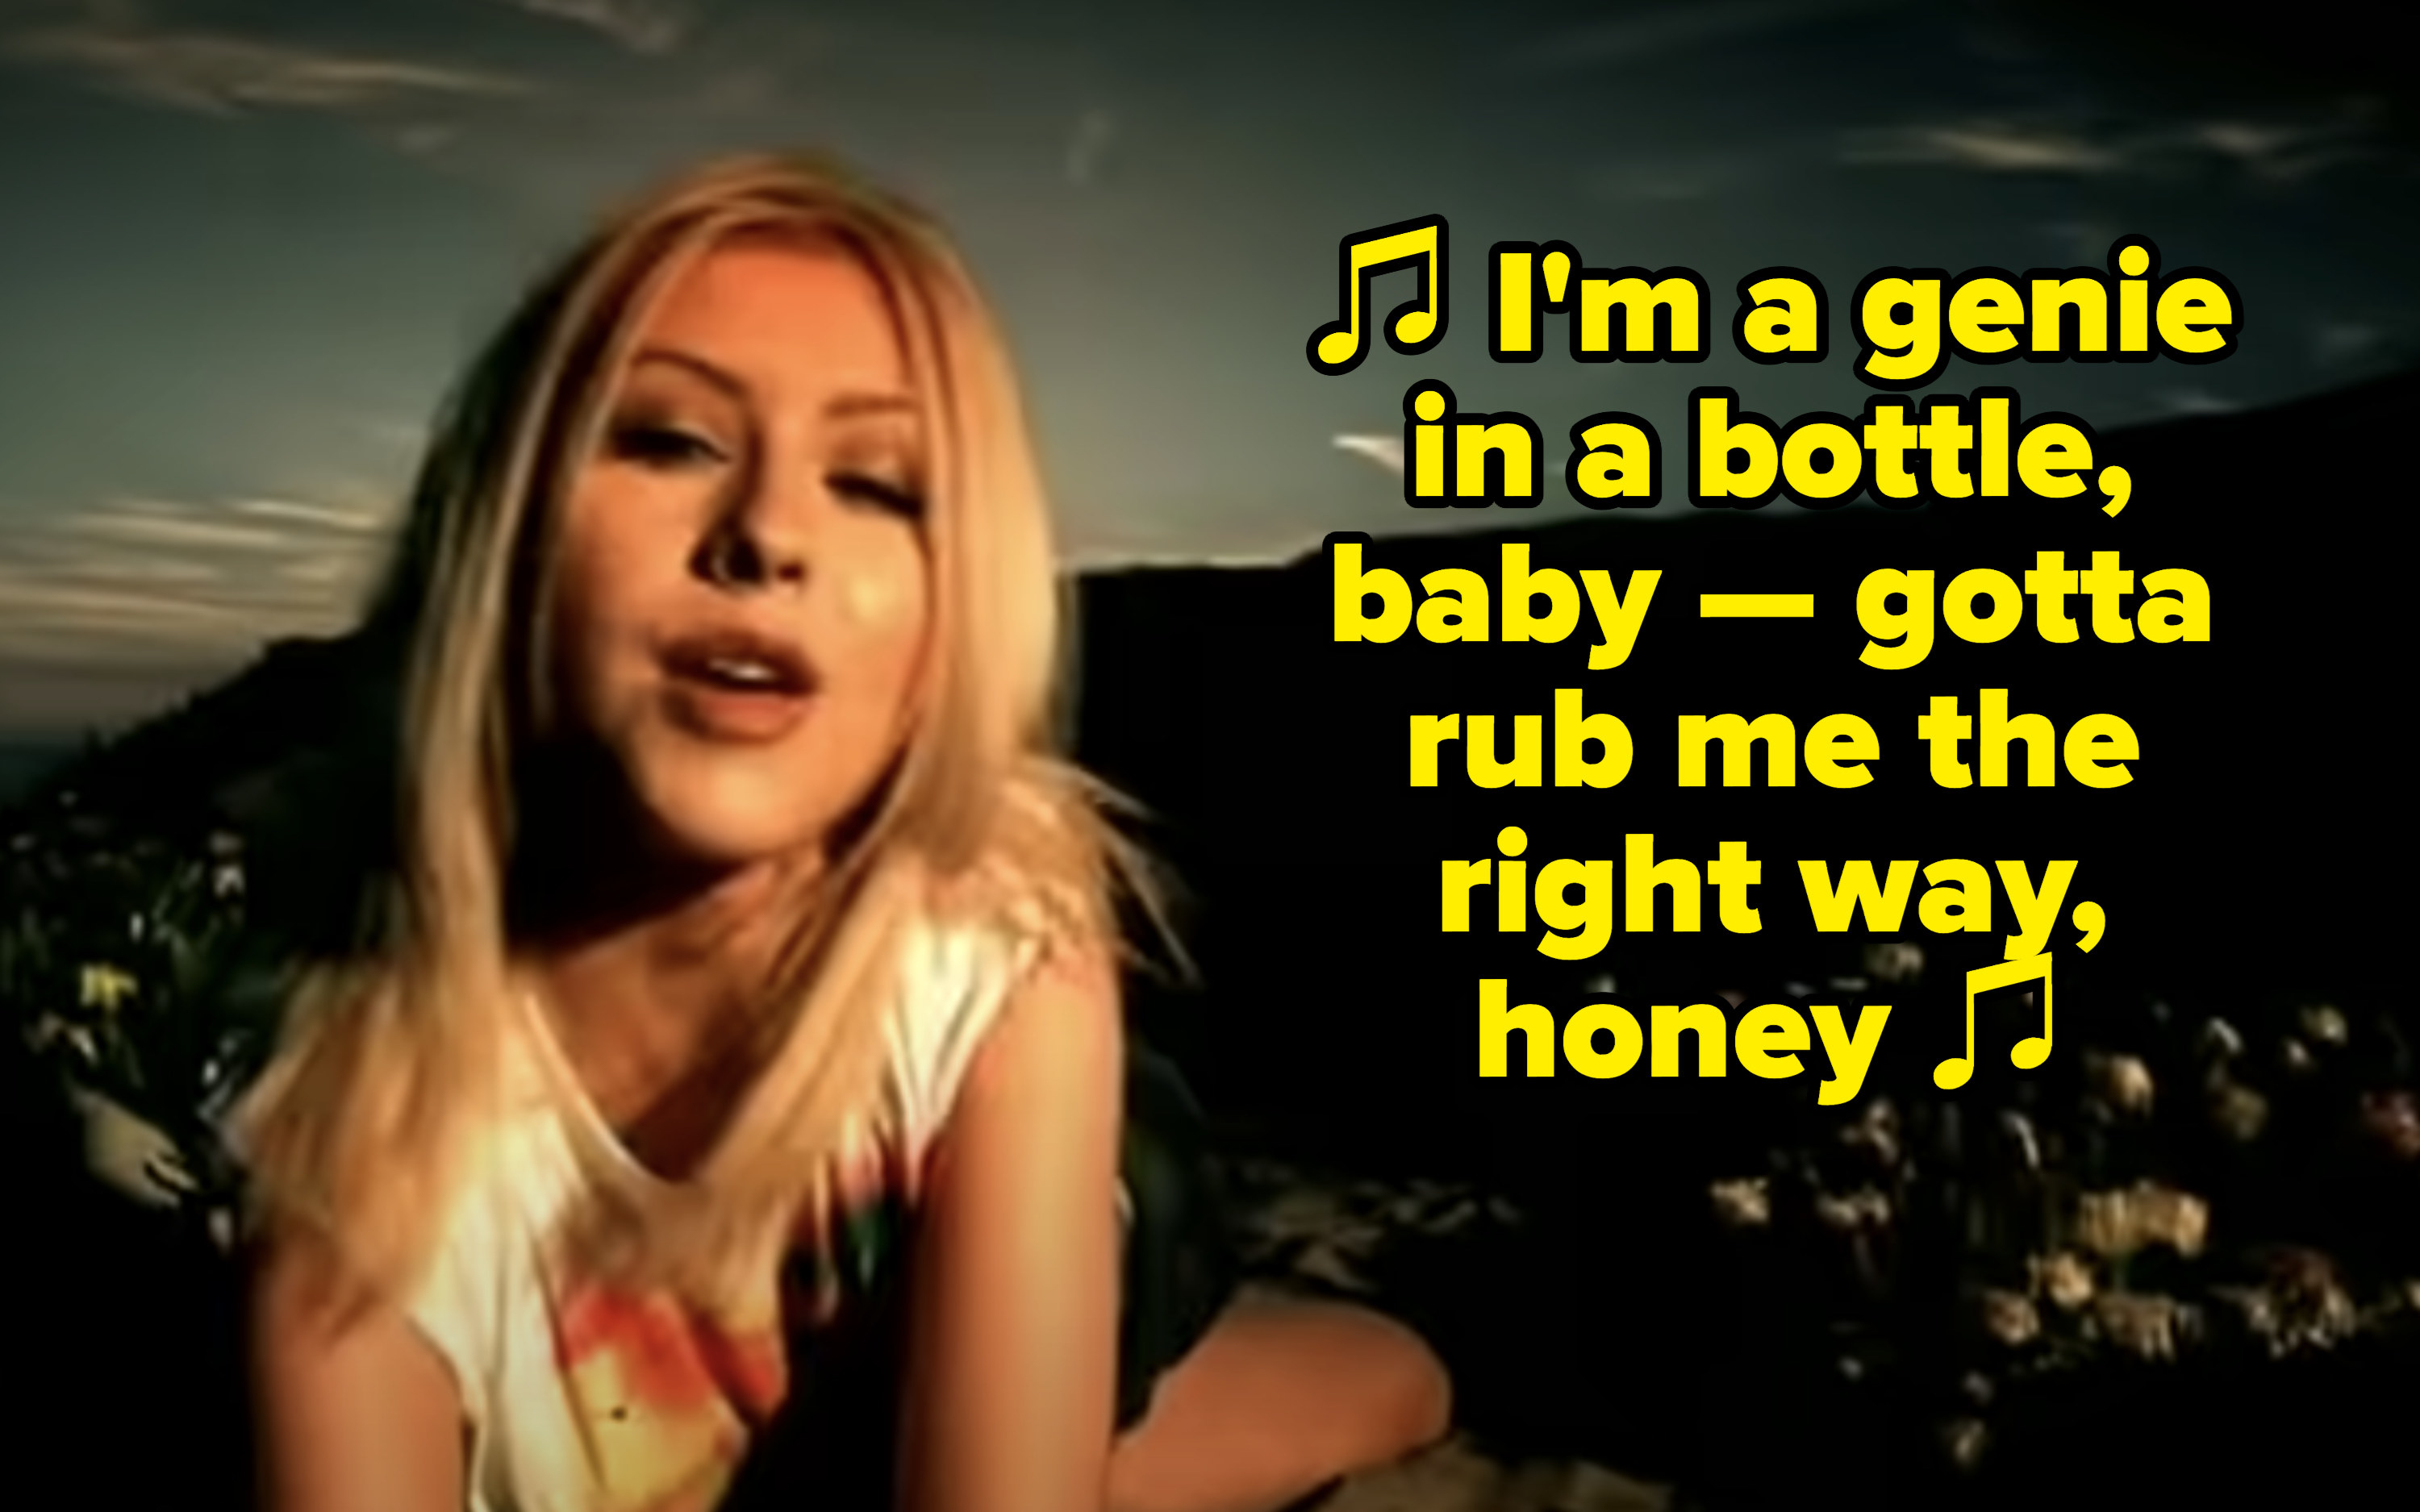 """Christina Aguilera singing: """"I'm a genie in a bottle, baby — gotta rub me the right way, honey"""""""